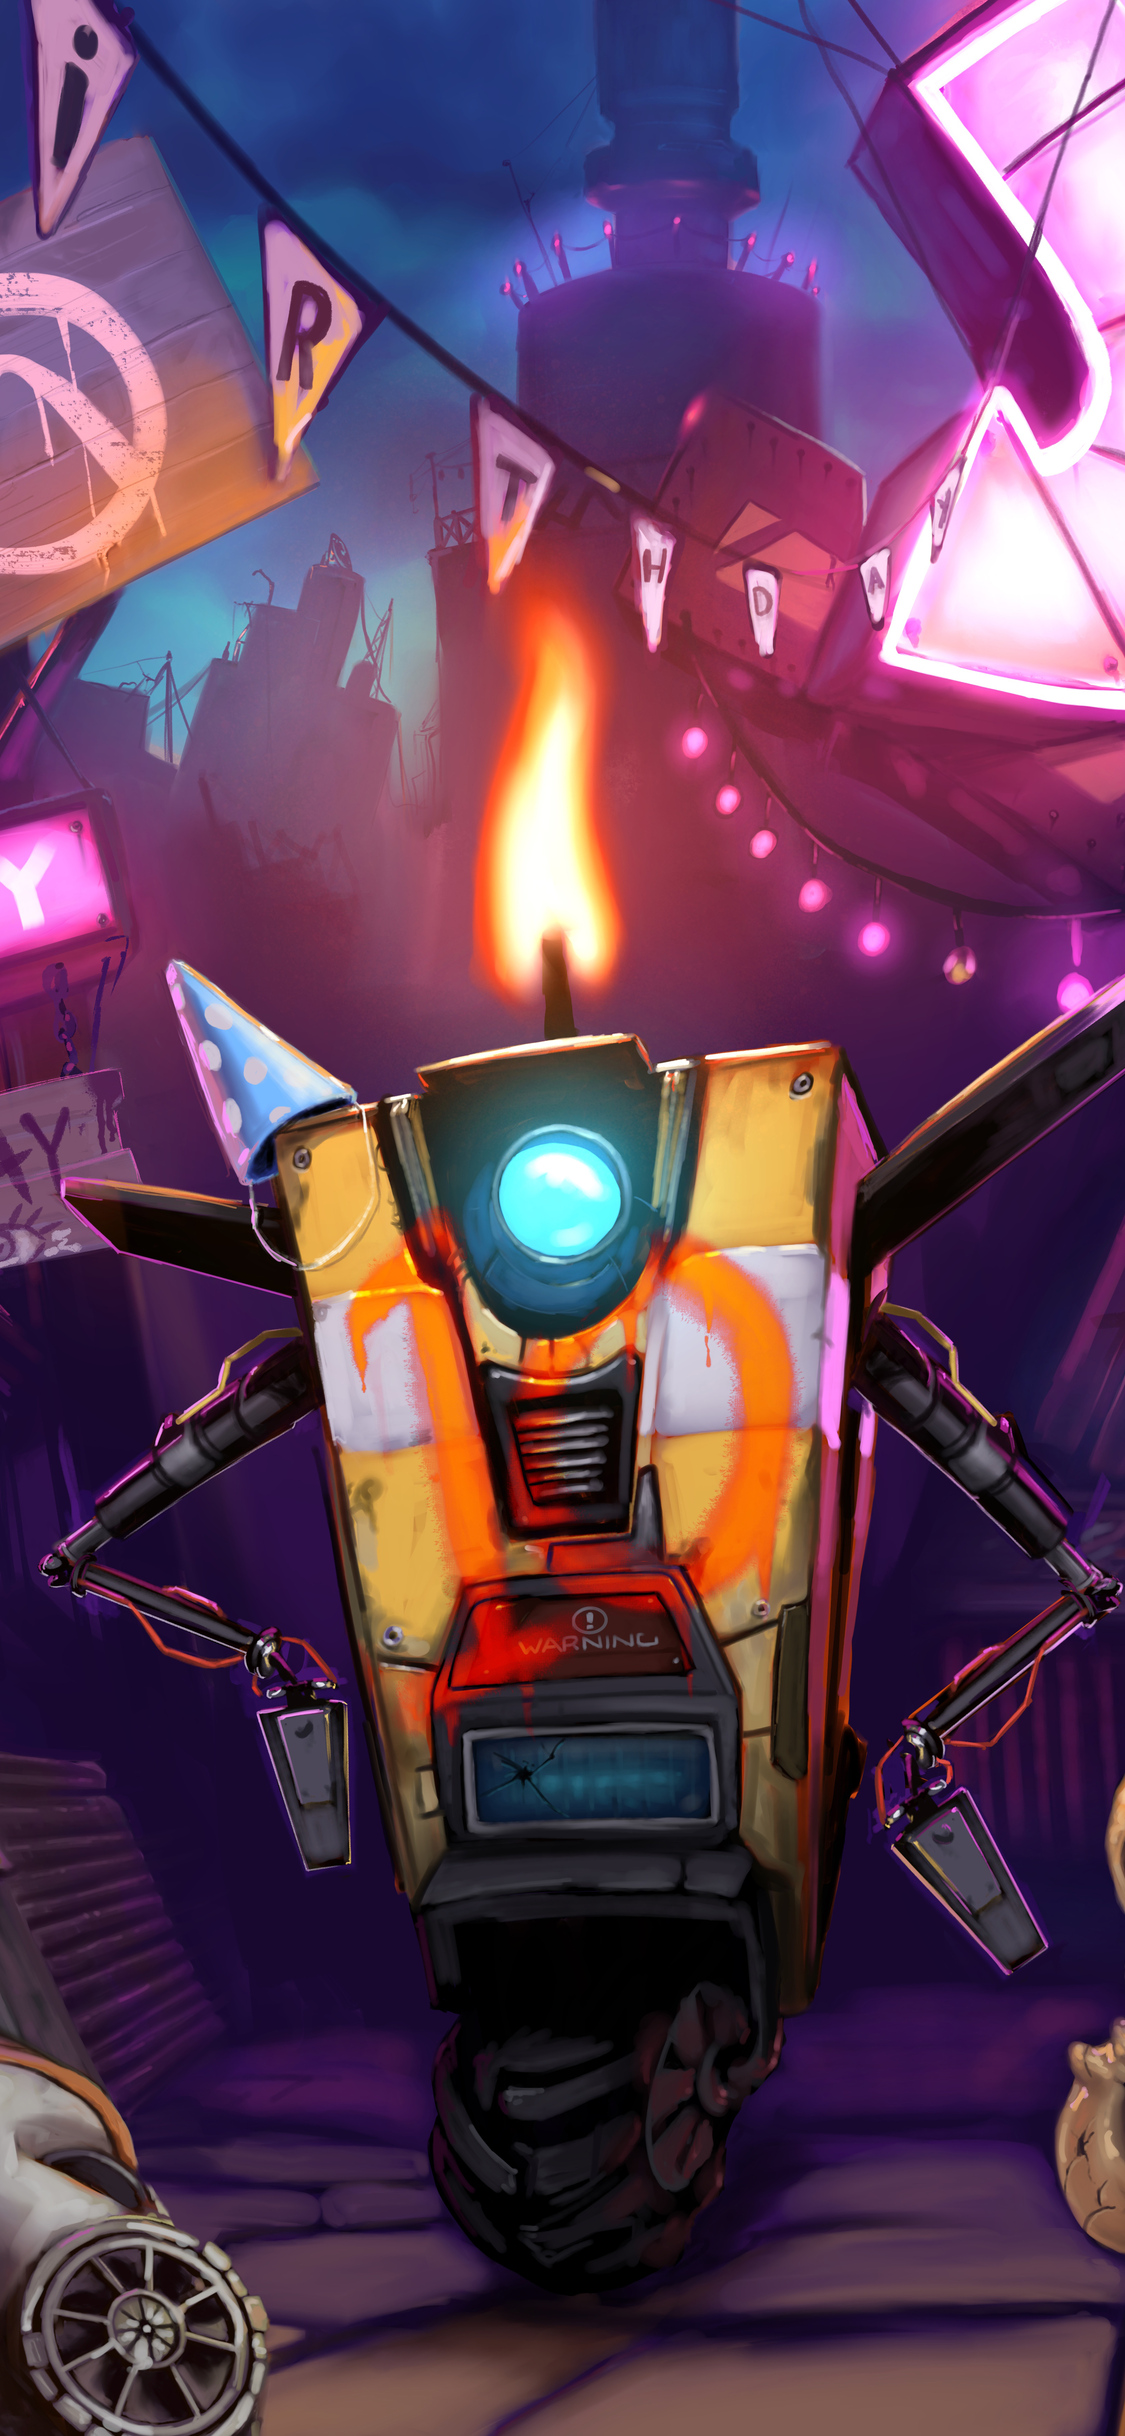 1125x2436 Claptrap Borderlands 3 Iphone Xs Iphone 10 Iphone